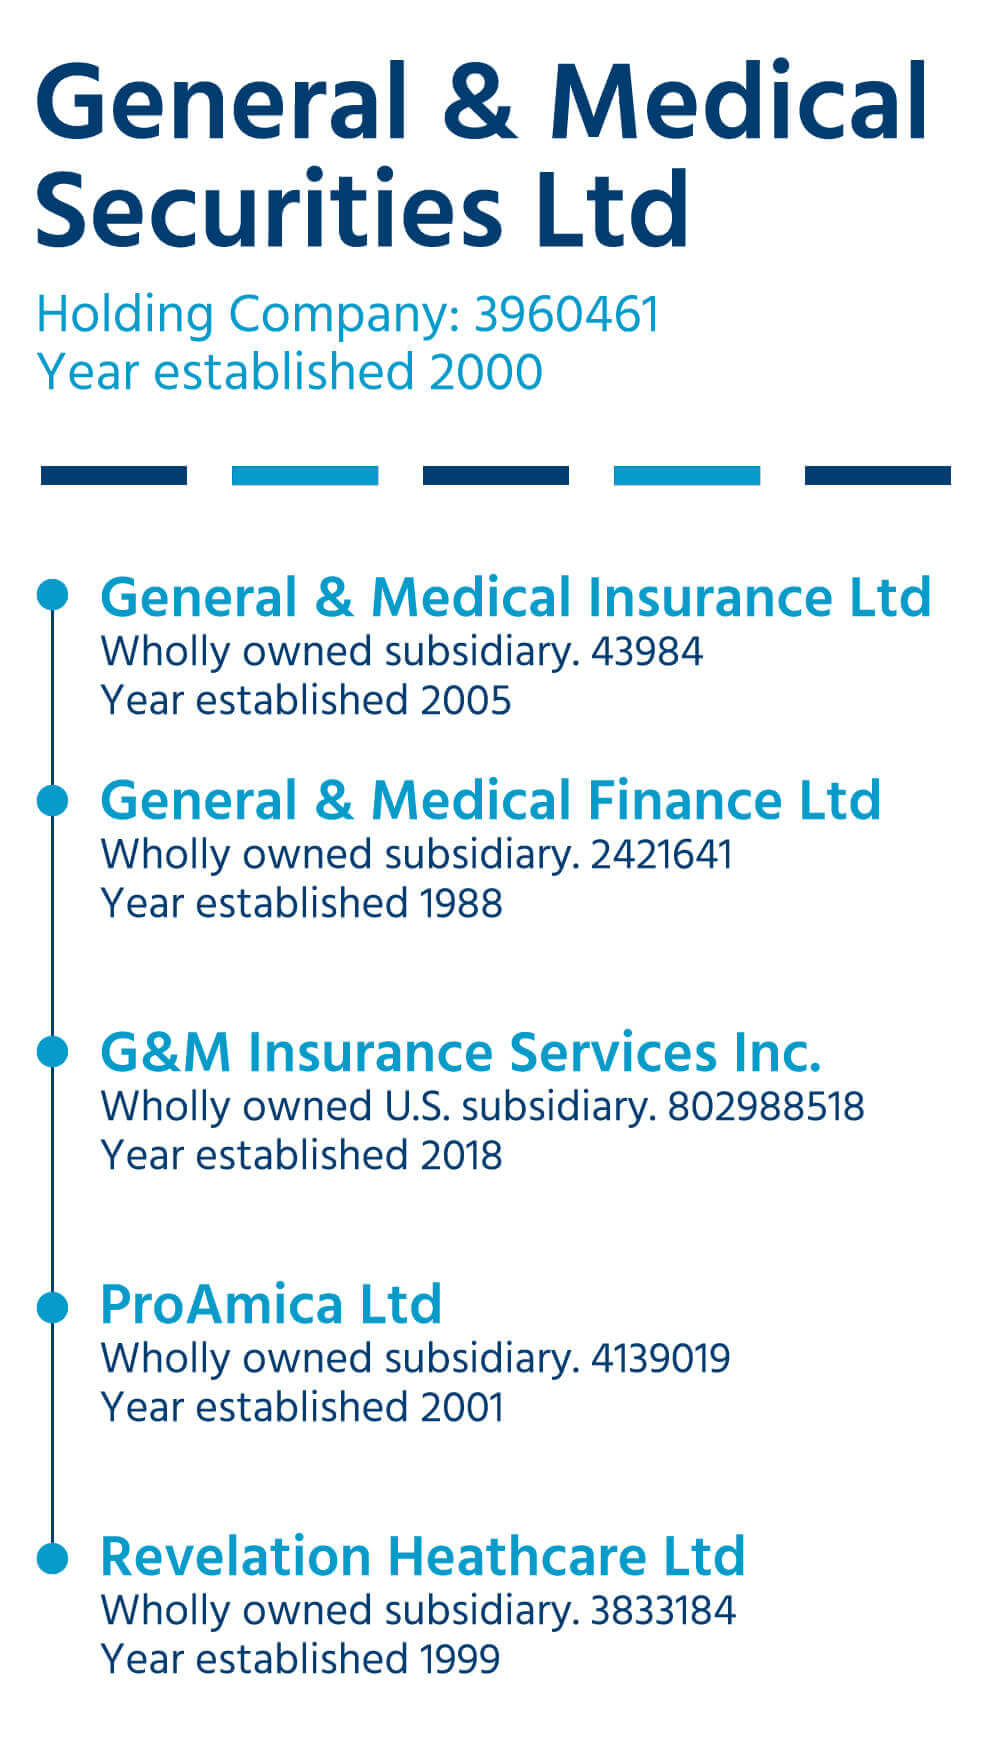 General and Medical Securities